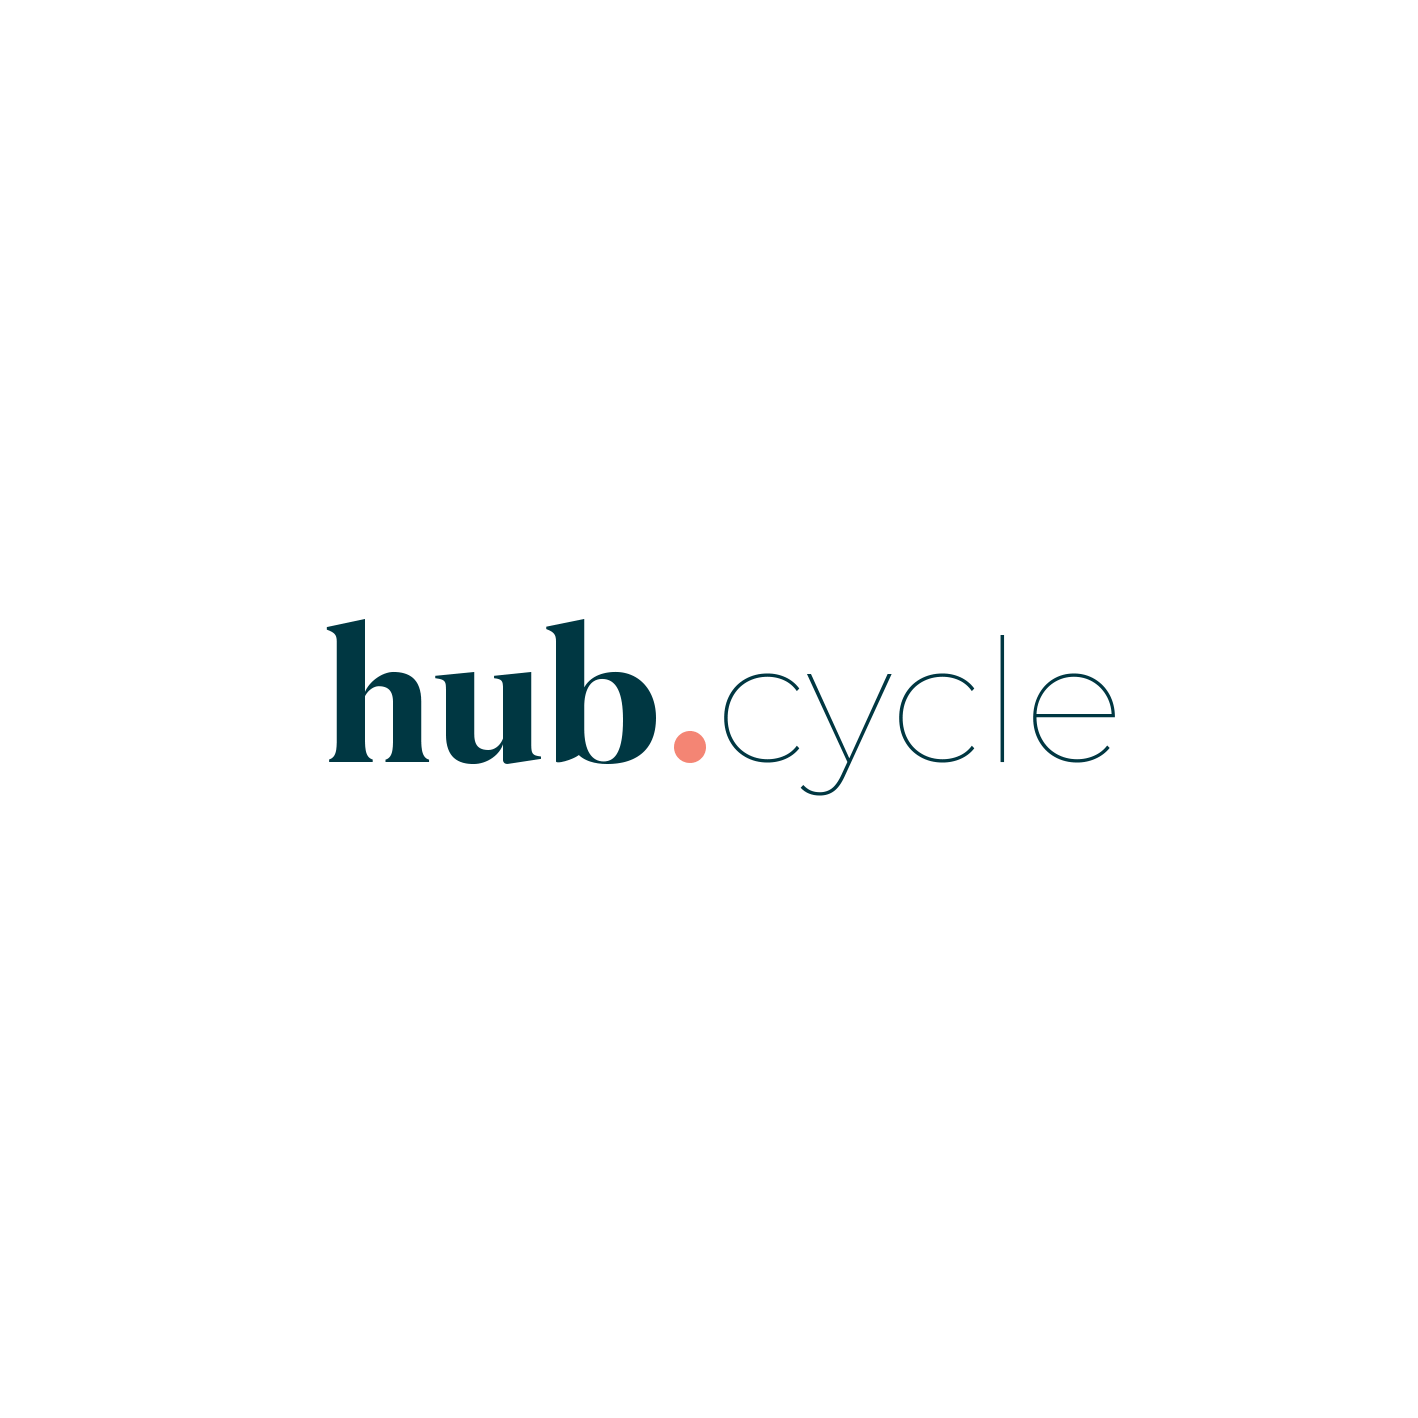 Hub.cycle - Supporting industries growing towards a sustainable future